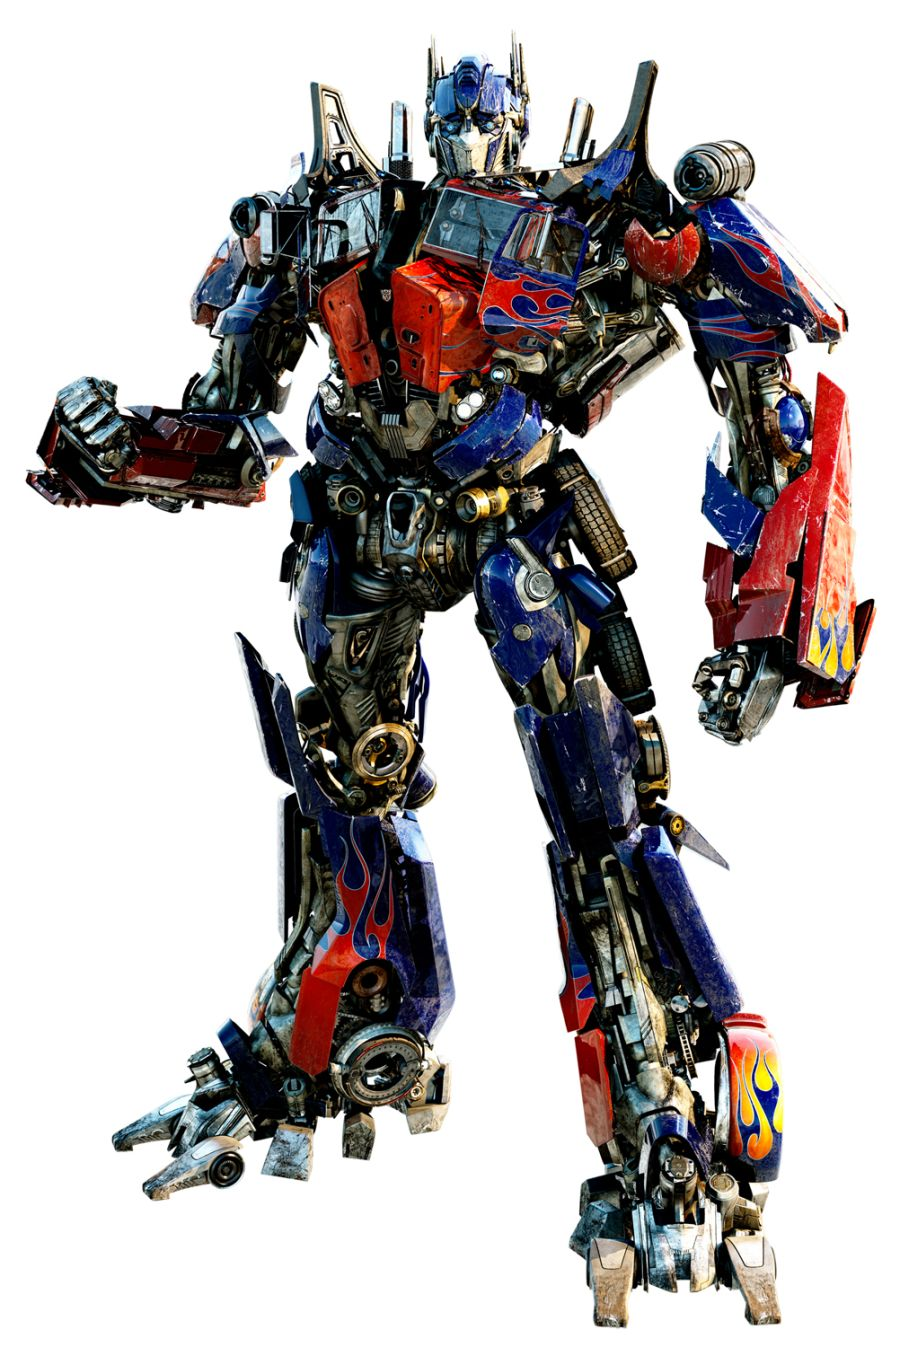 http://img2.wikia.nocookie.net/__cb20111108222605/transformers/images/4/4a/Dotm-optimusprime-poster.jpg